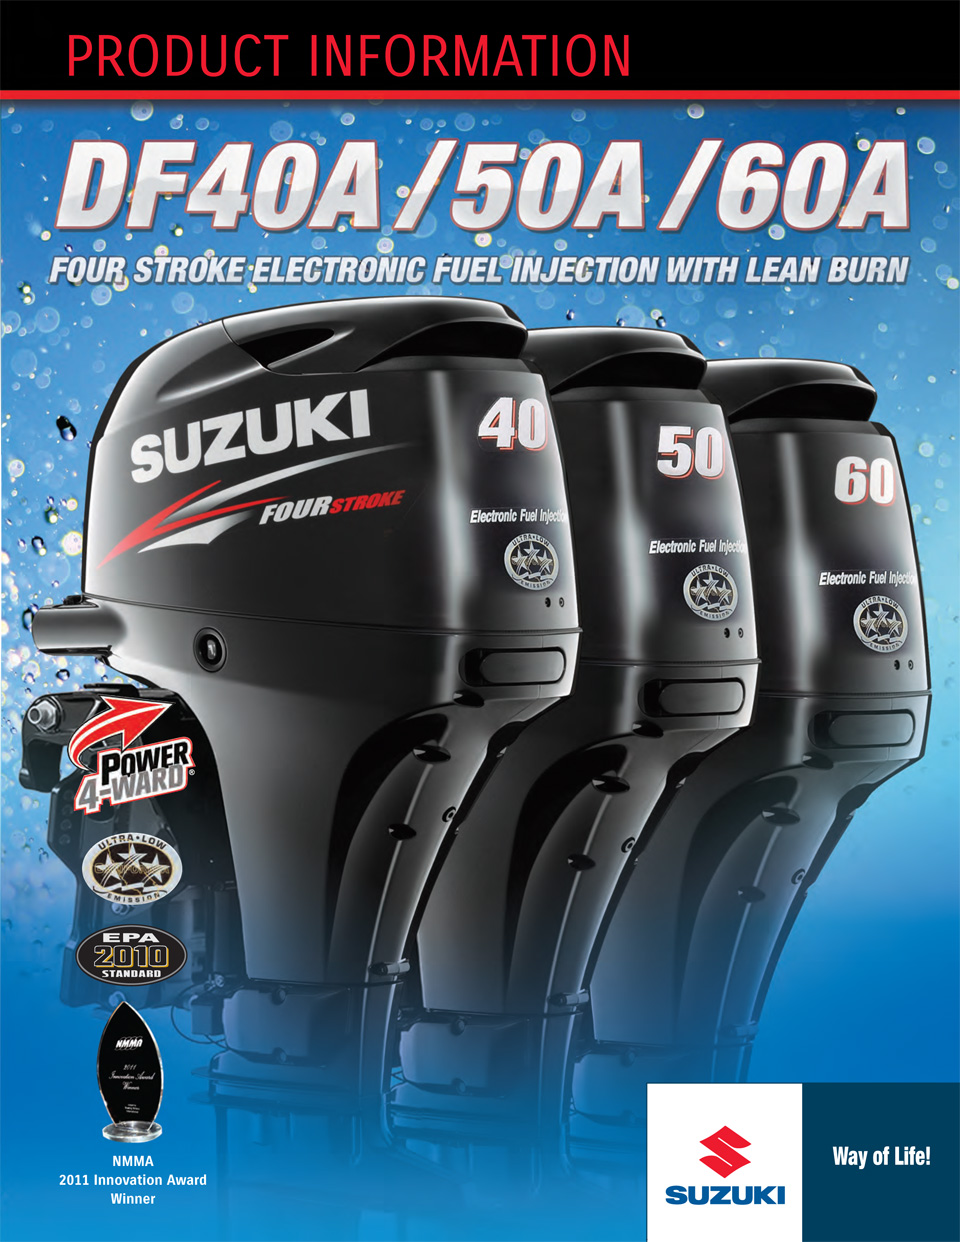 буклет Product Information Suzuki df50a and df60a